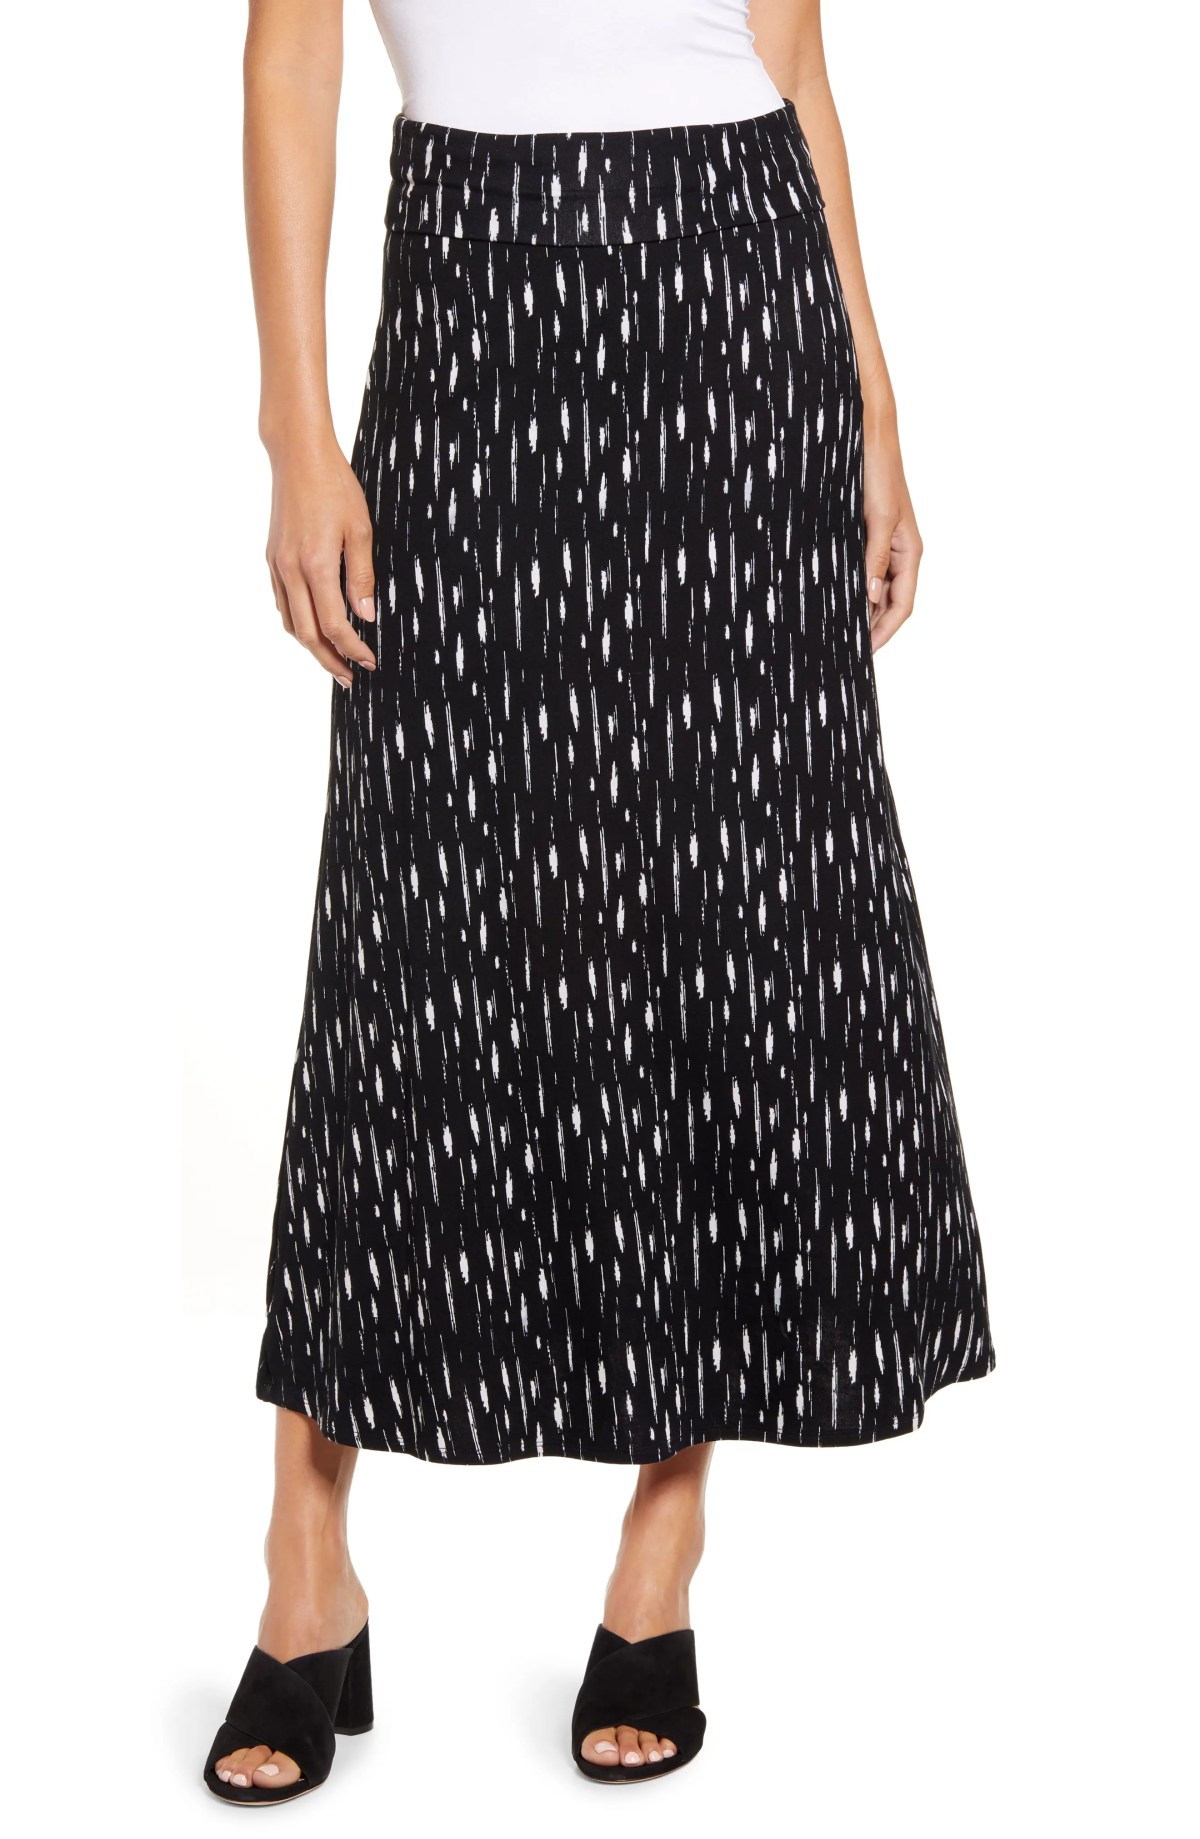 LOVEAPPELLA Roll Top Print Maxi Skirt, Main, color, BLACK/ IVORY